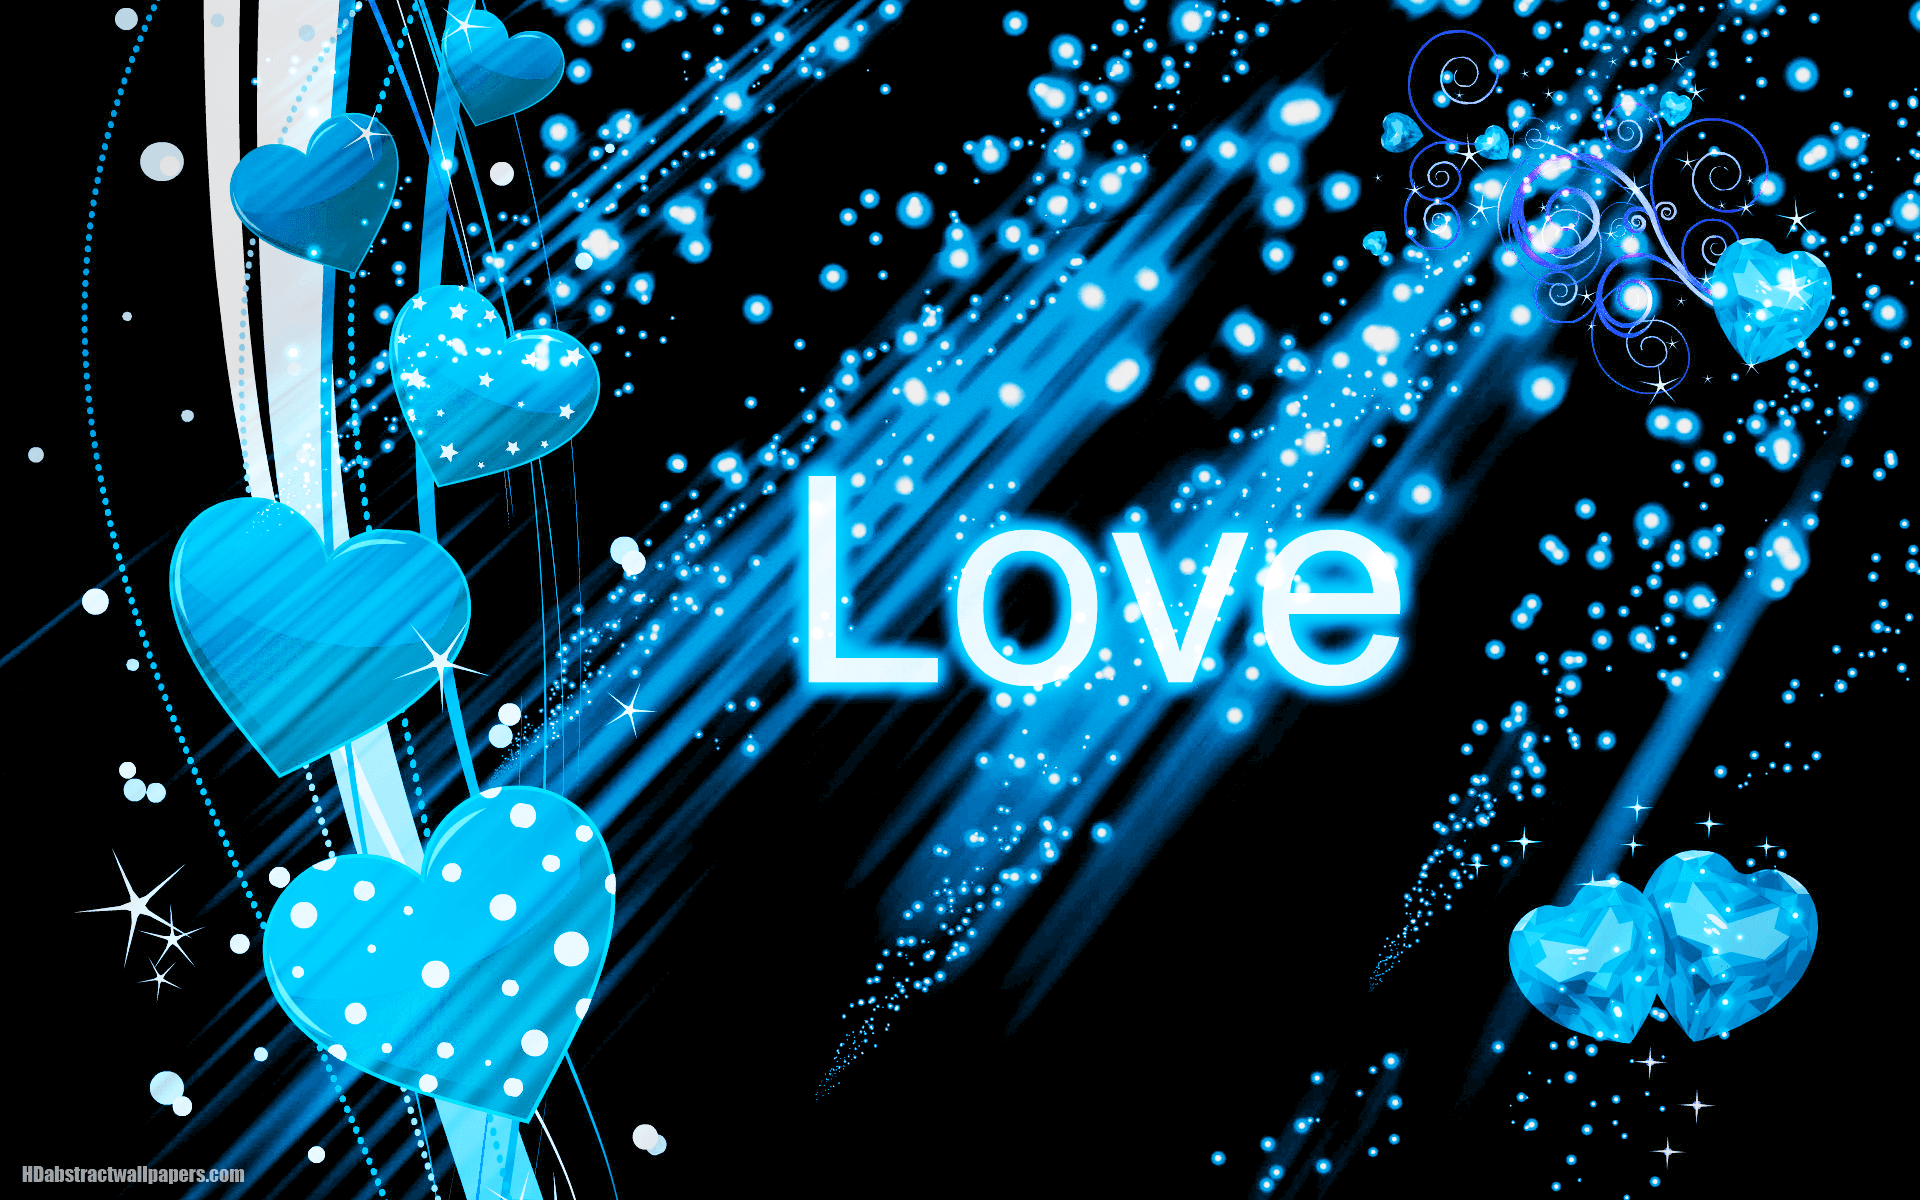 Black abstract wallpaper blue love hearts text love black abstract wallpaper blue love hearts text love voltagebd Choice Image